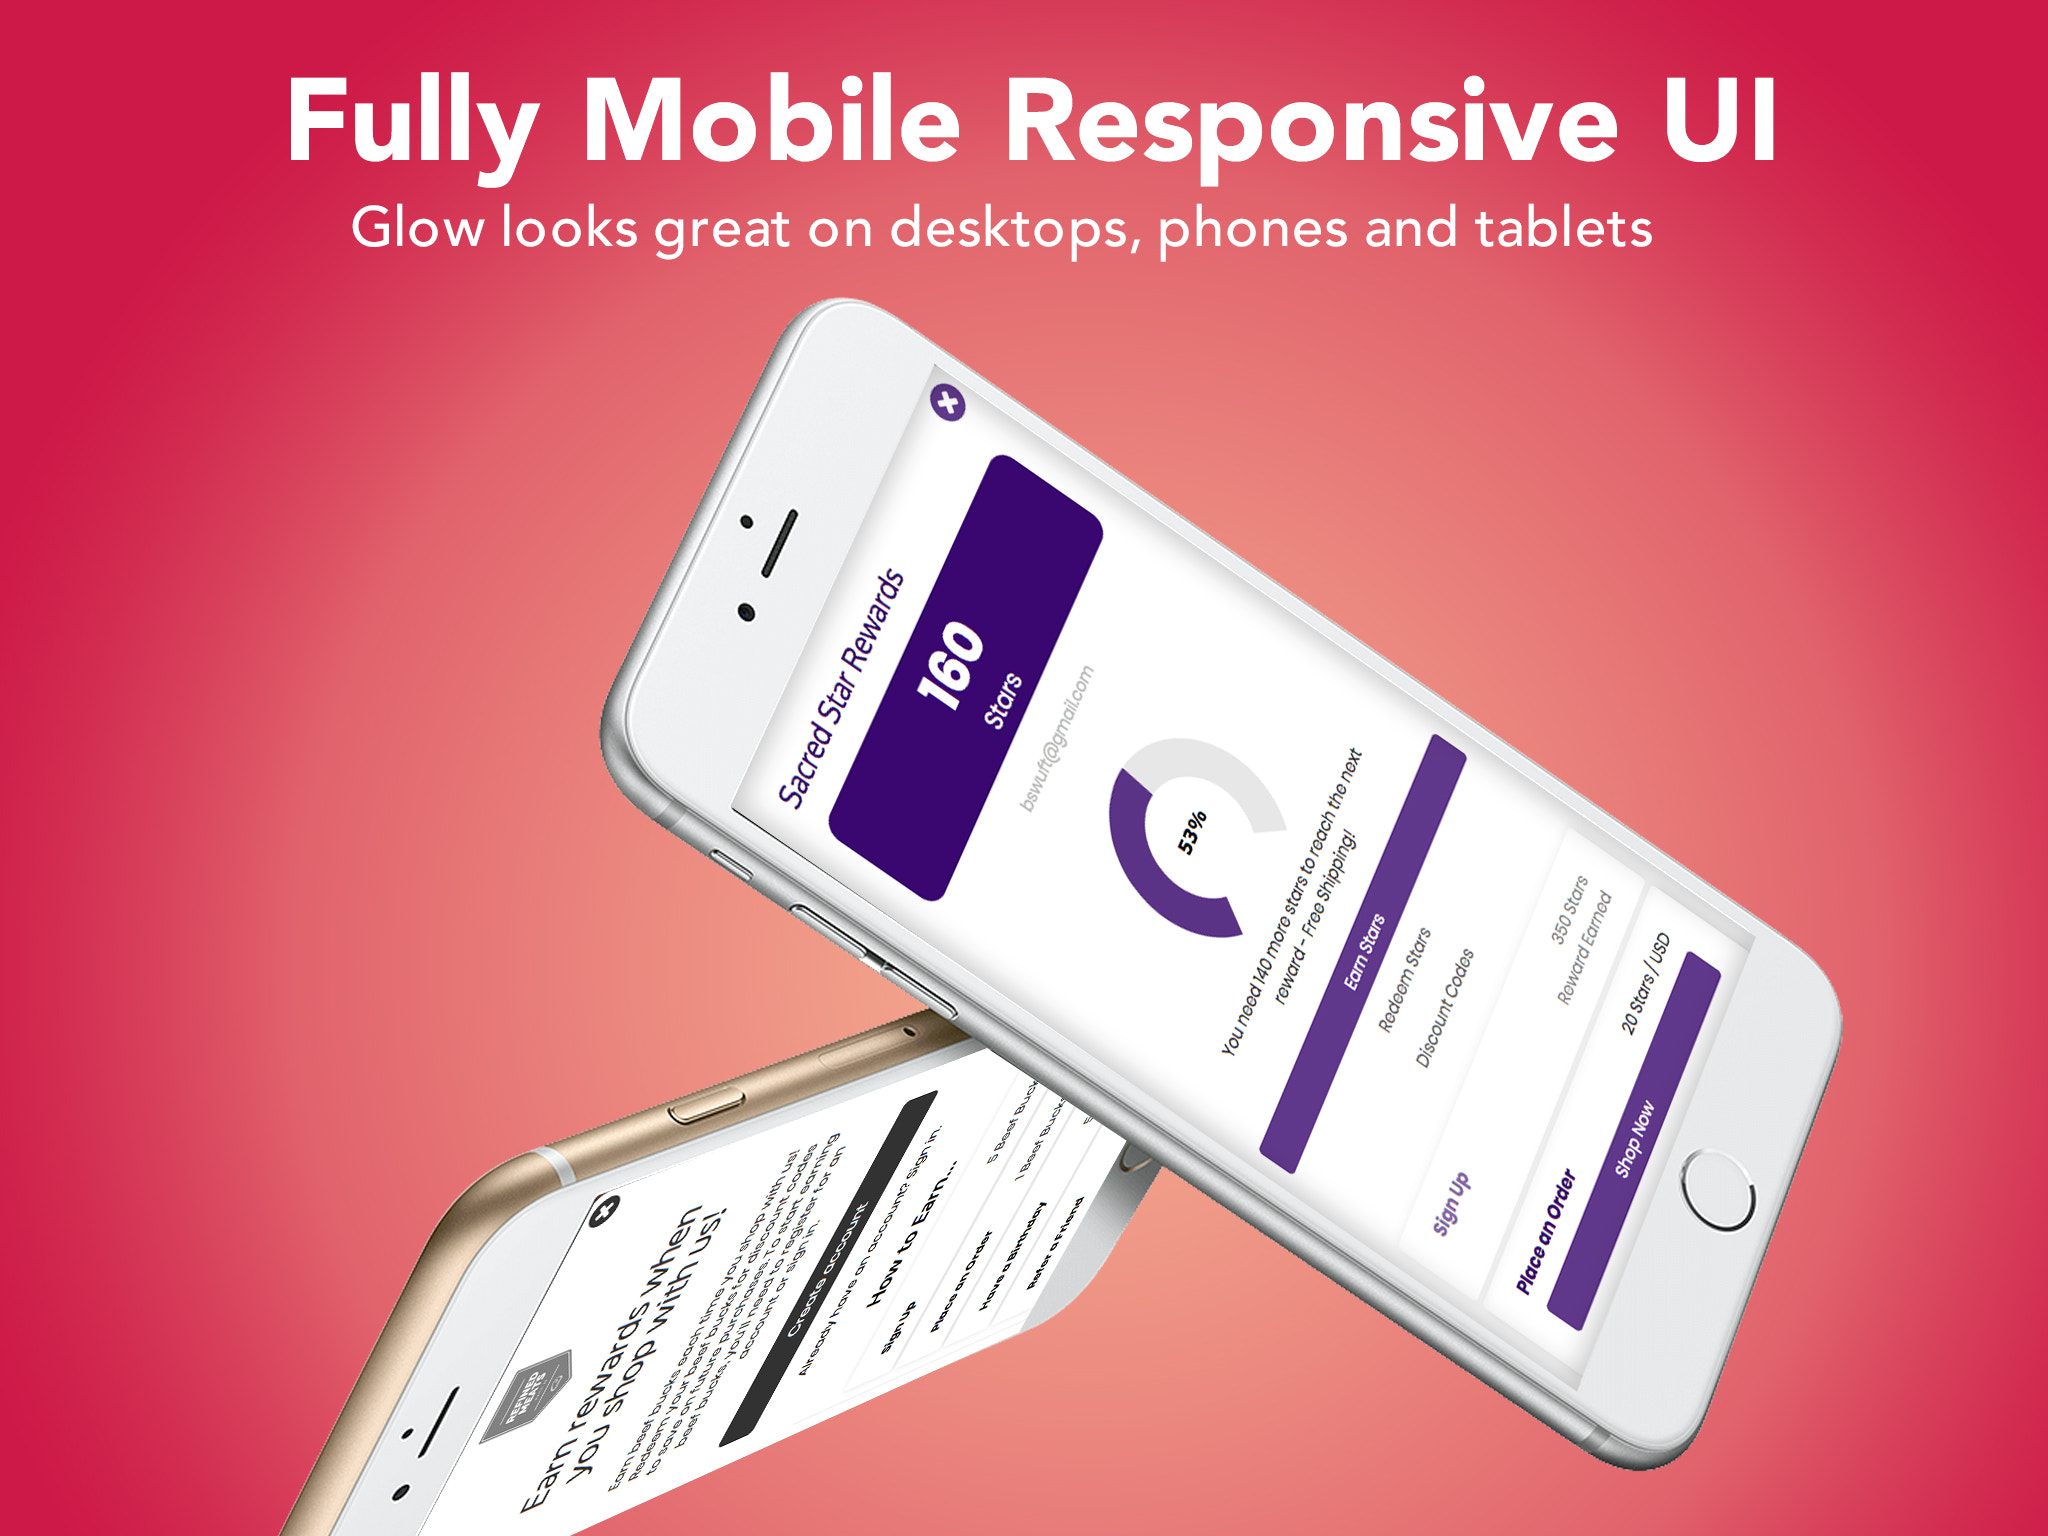 Fully Mobile Responsive User Interface